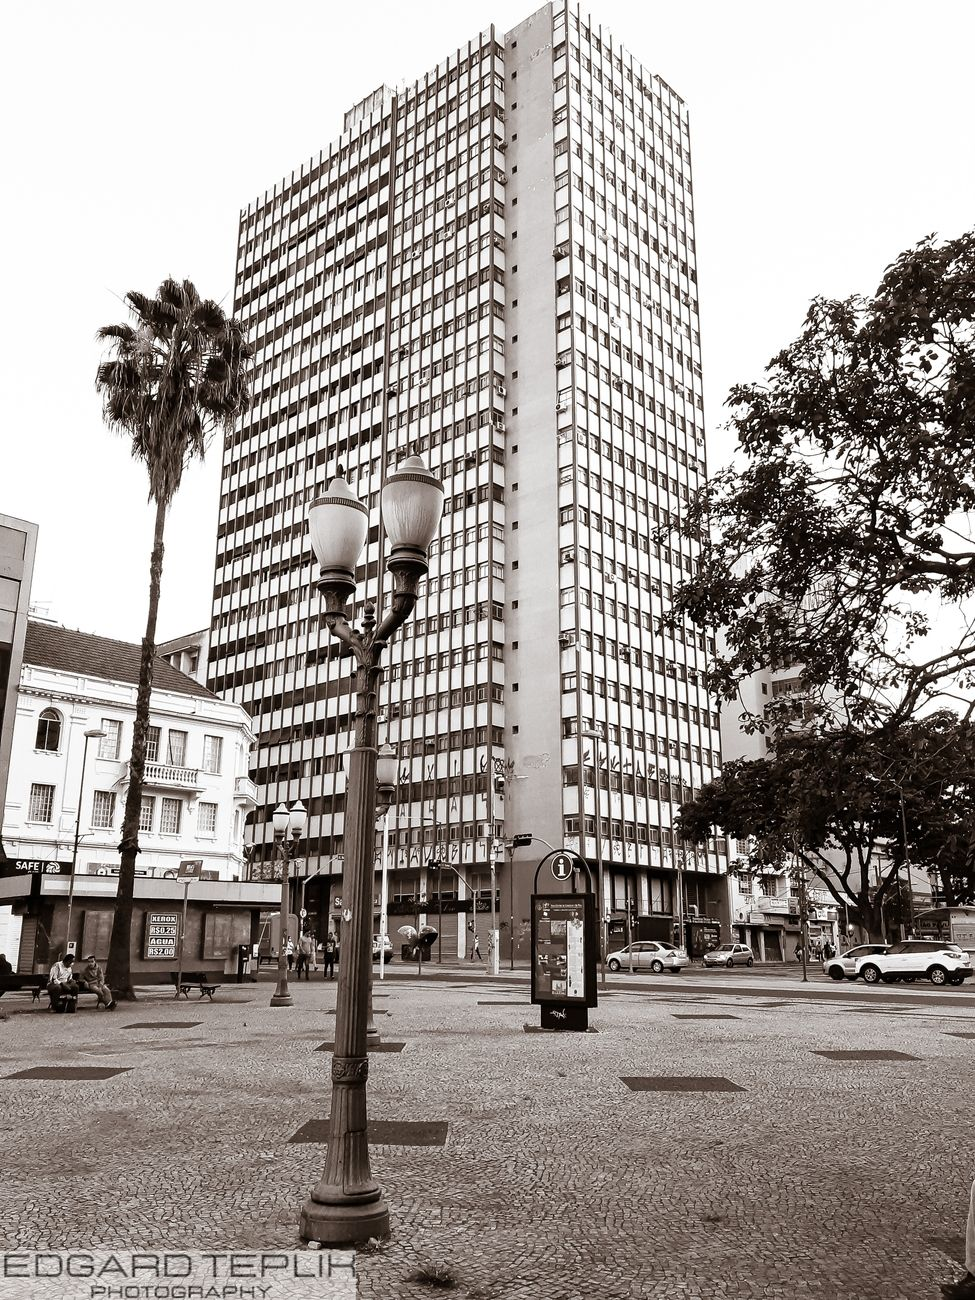 We highlight, an old lamp post in a central square in Campinas and in the background a large building on Street Francisco Glicério